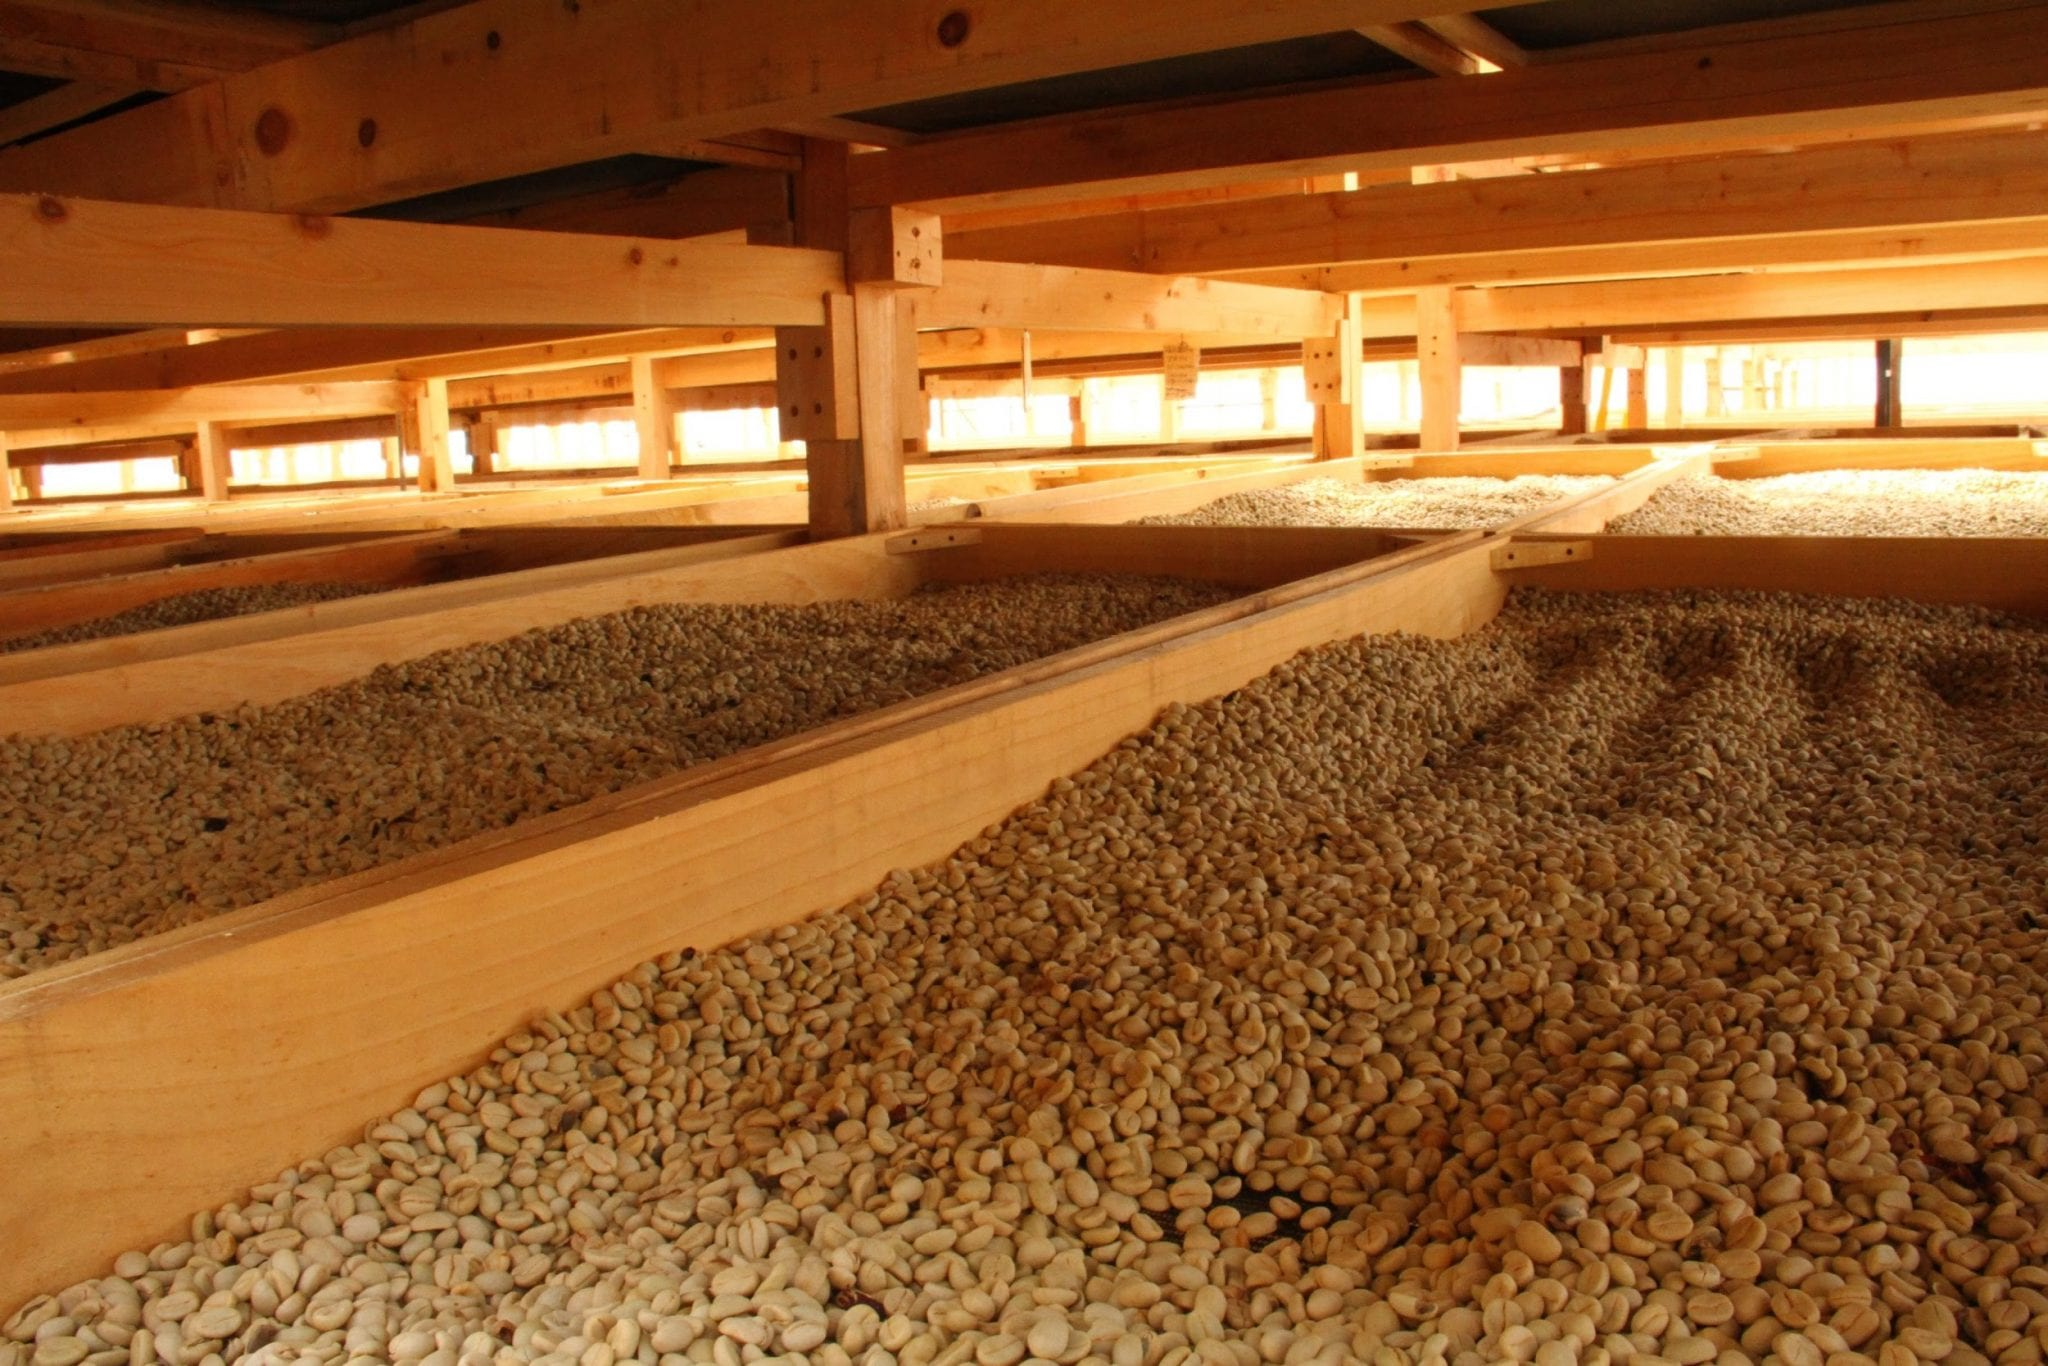 Beds of coffee beans drying.